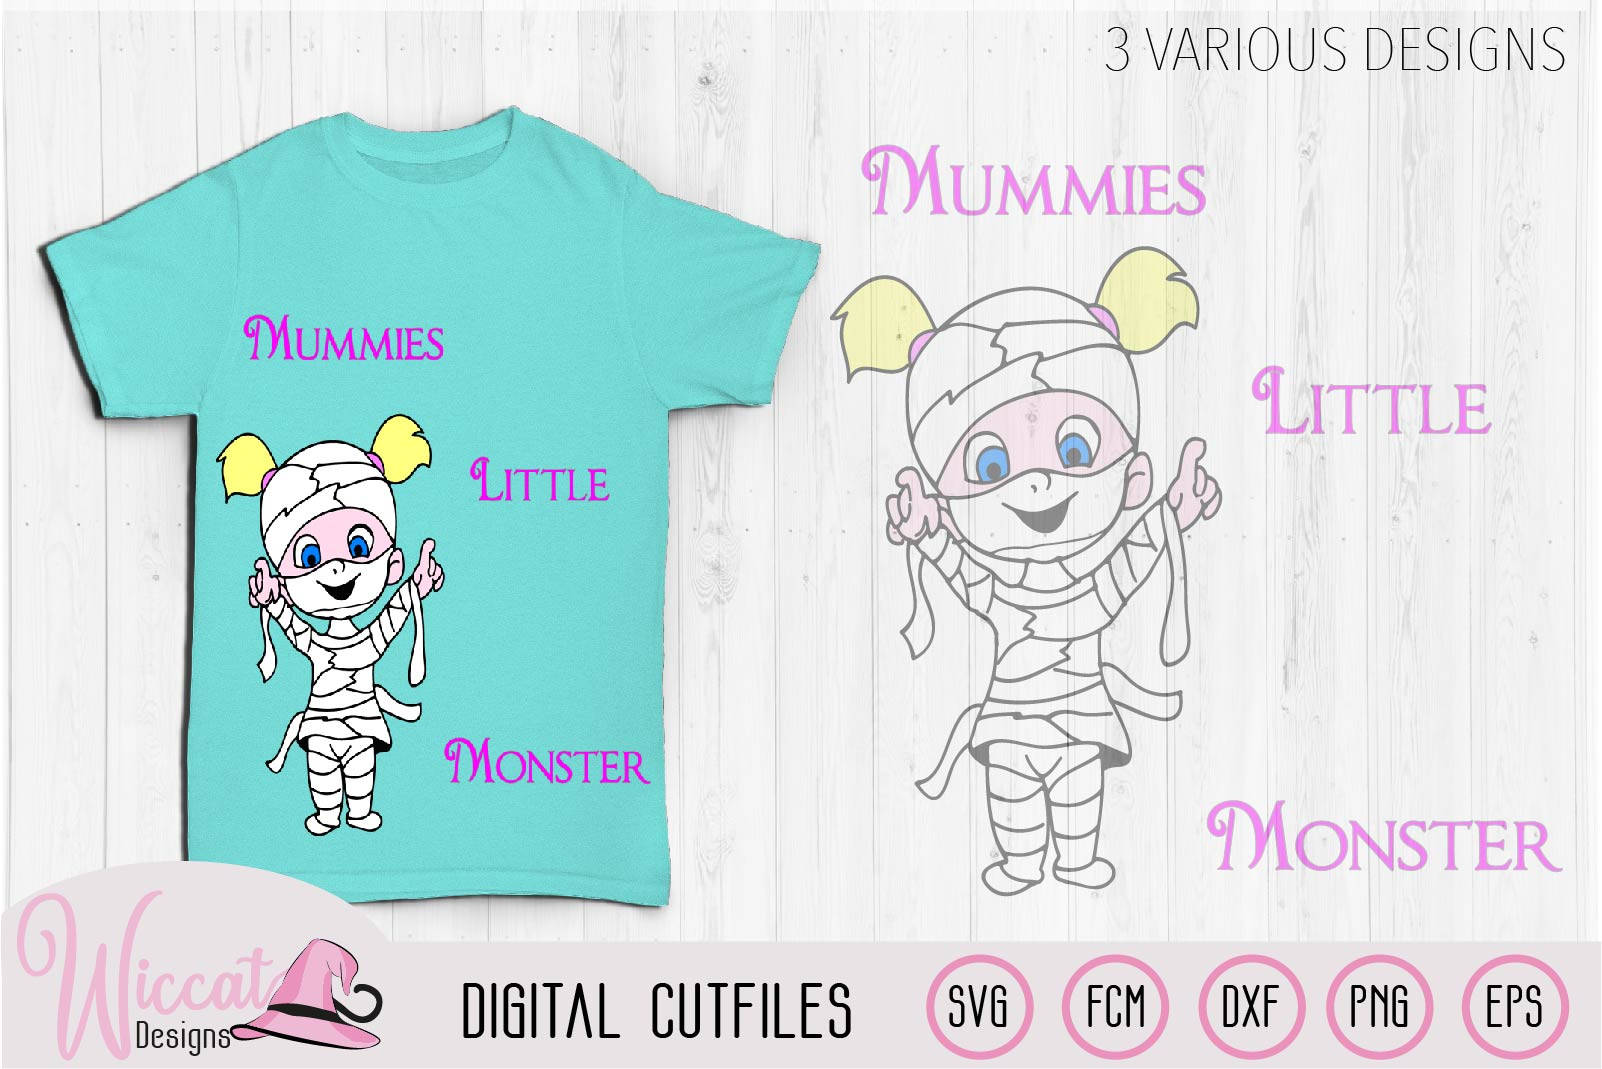 Mummies little monster svg cut file example image 2